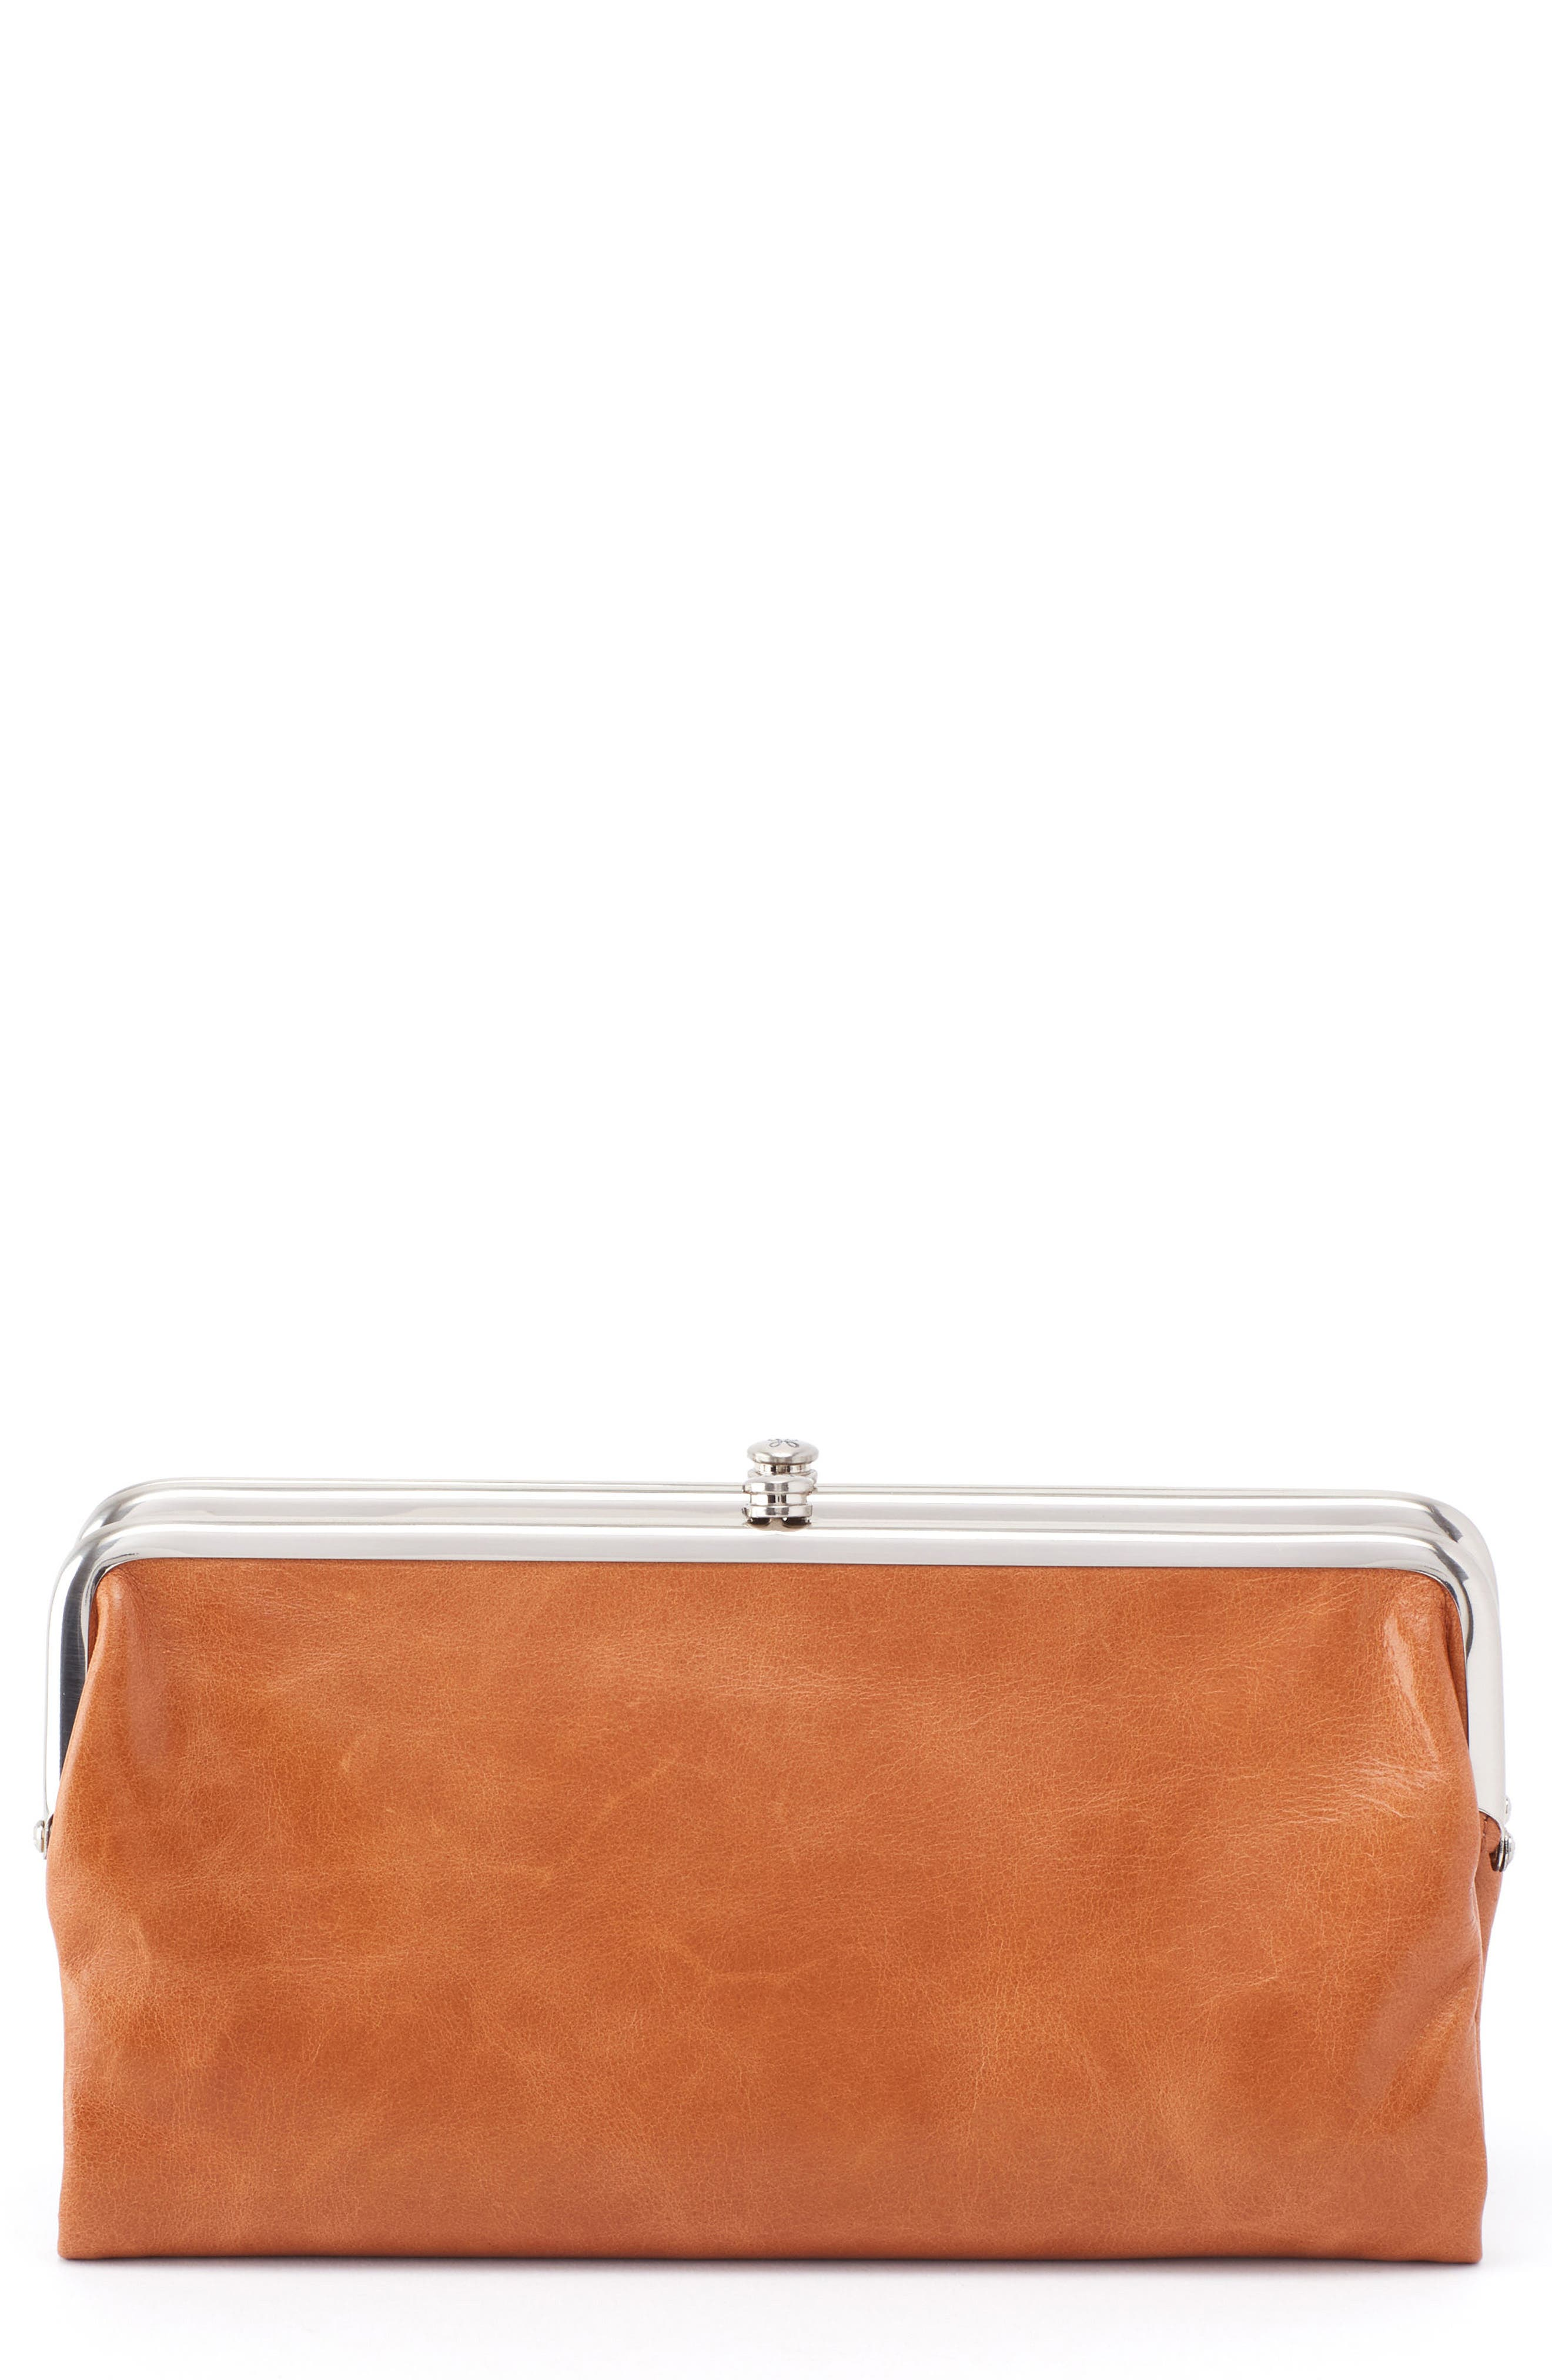 Outlet Store Locations For Nice Sale Online Leather Statement Clutch - AFRO FLOWER by VIDA VIDA Discount Visit New B2ujdCHVh